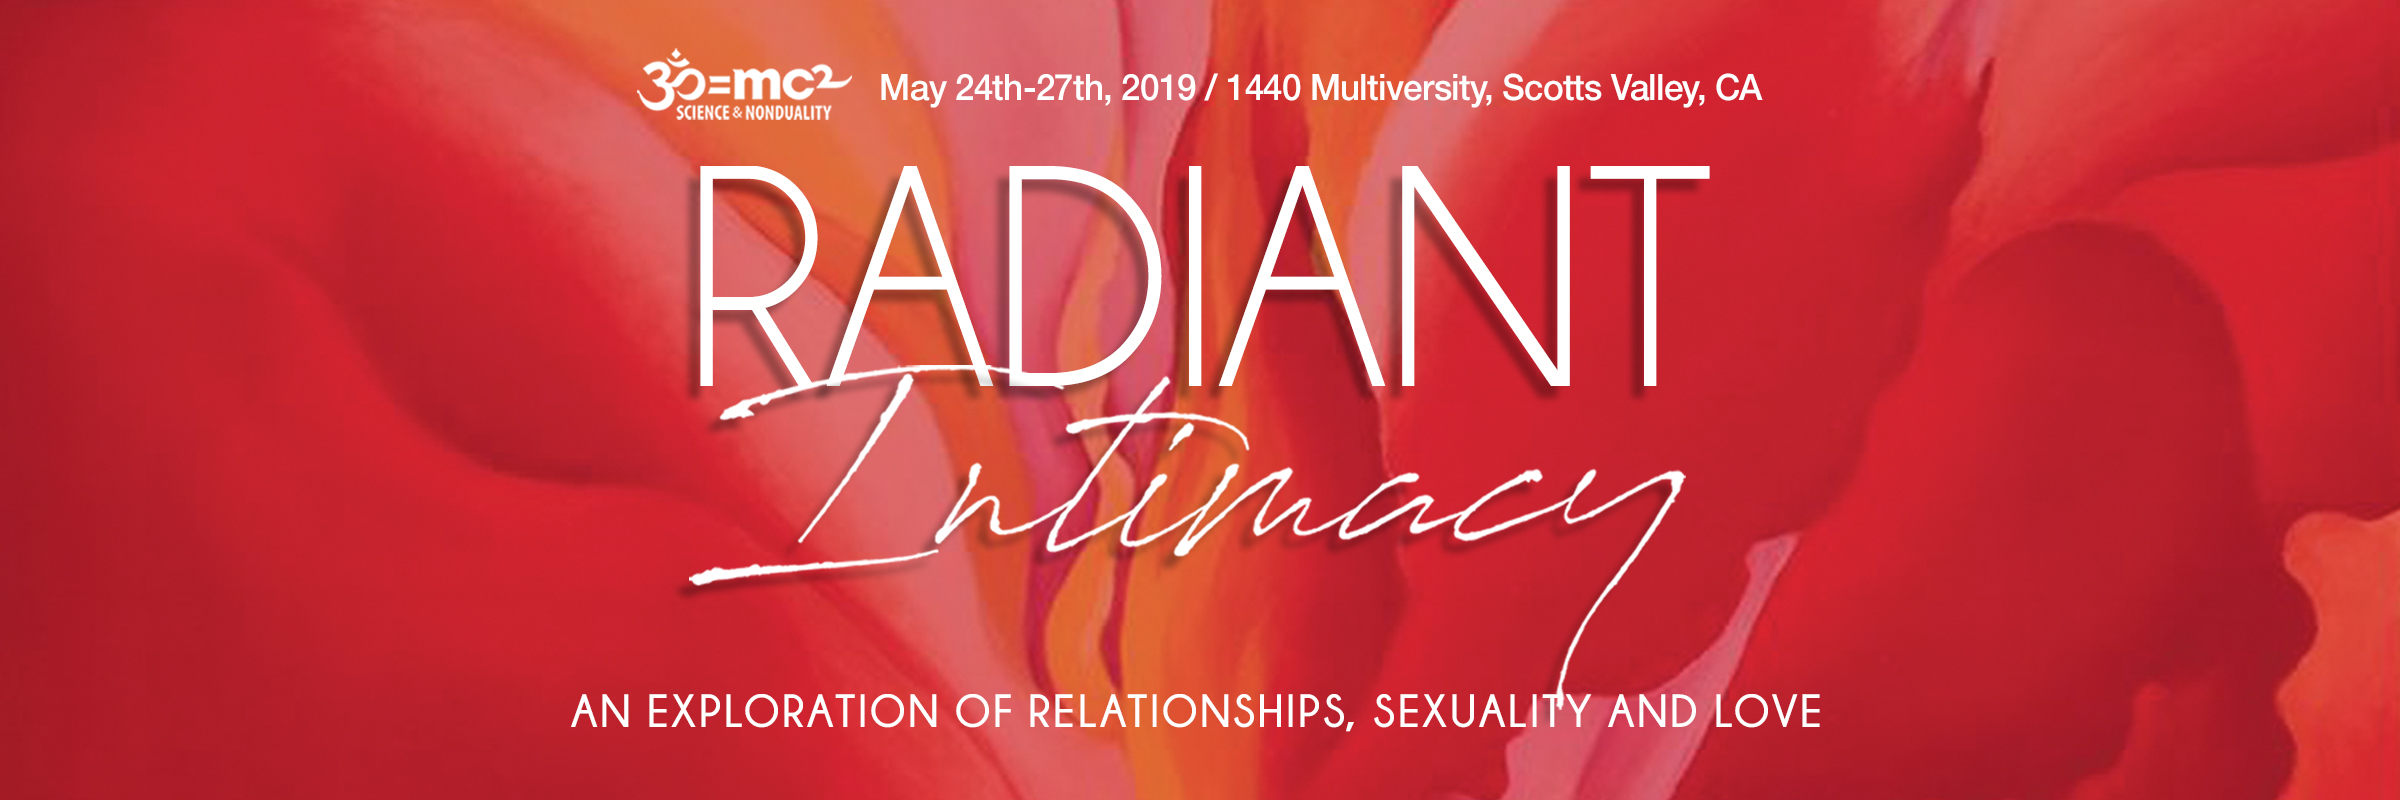 Radiant Intimacy